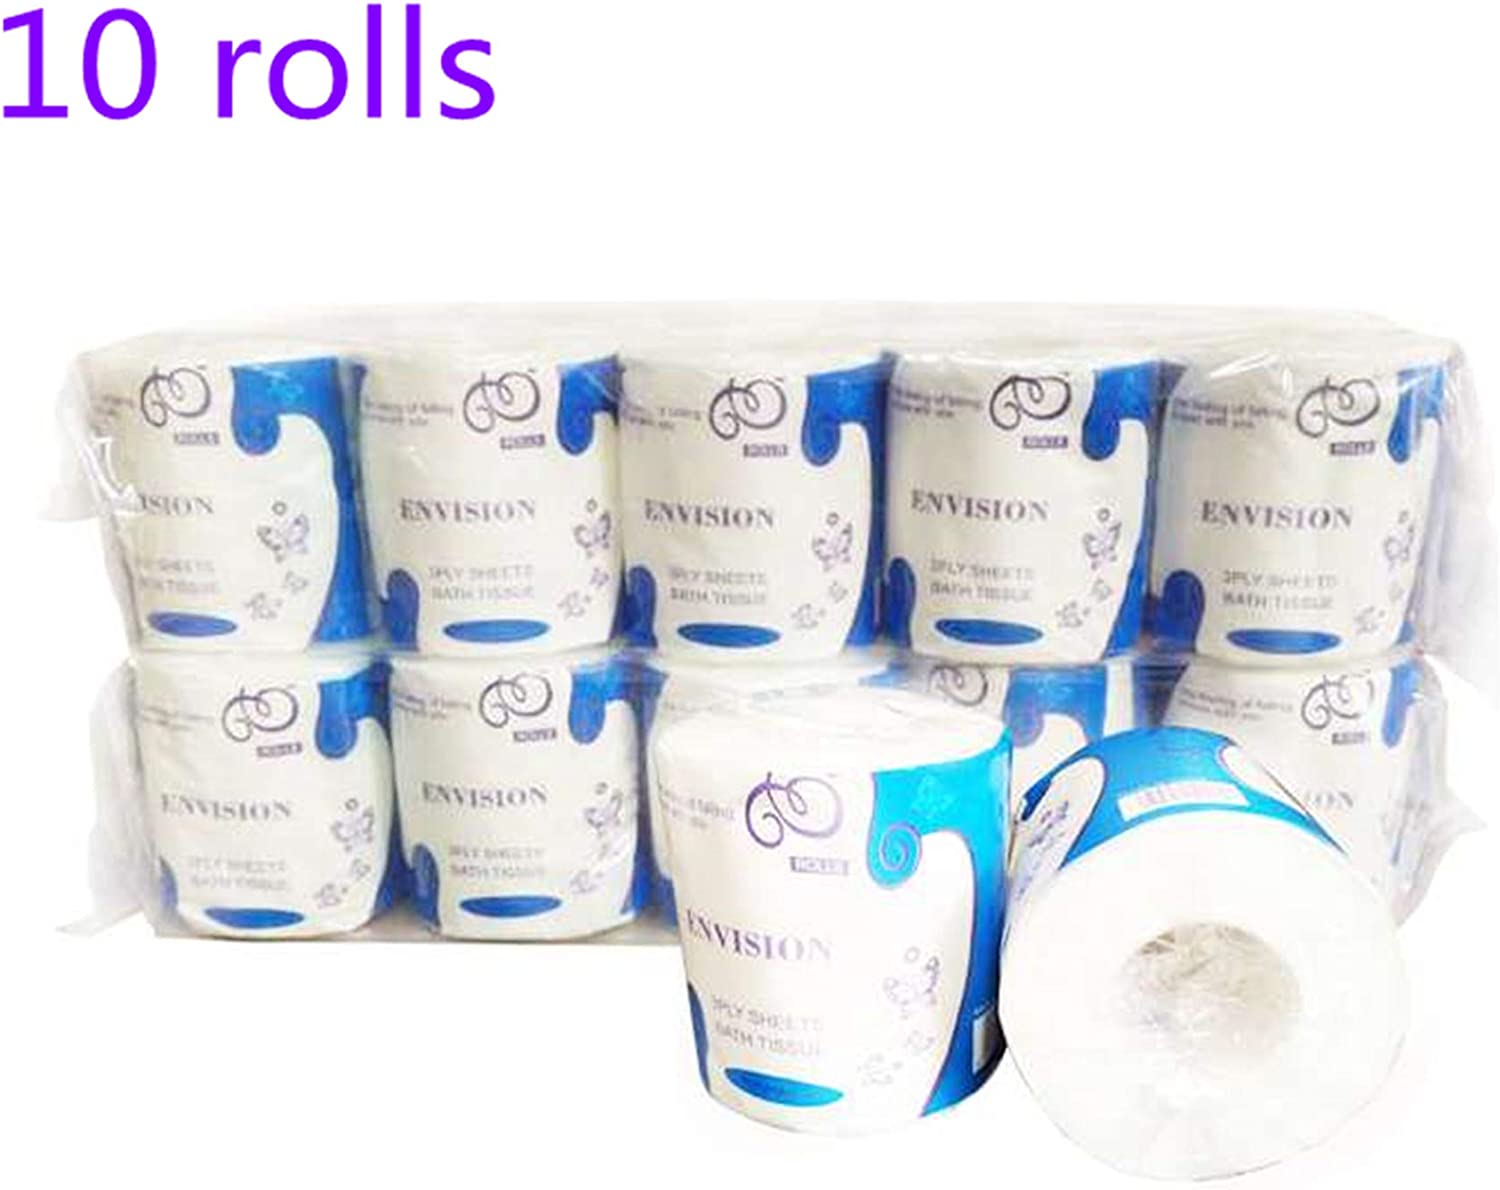 Kitchen Paper,Ultra Soft 3-Ply Skin-Friendly No Fragrance Household Paper Towels Roll Paper Absorbent Paper Towels Paper for Commercial Household Daily Use 3 Rolls